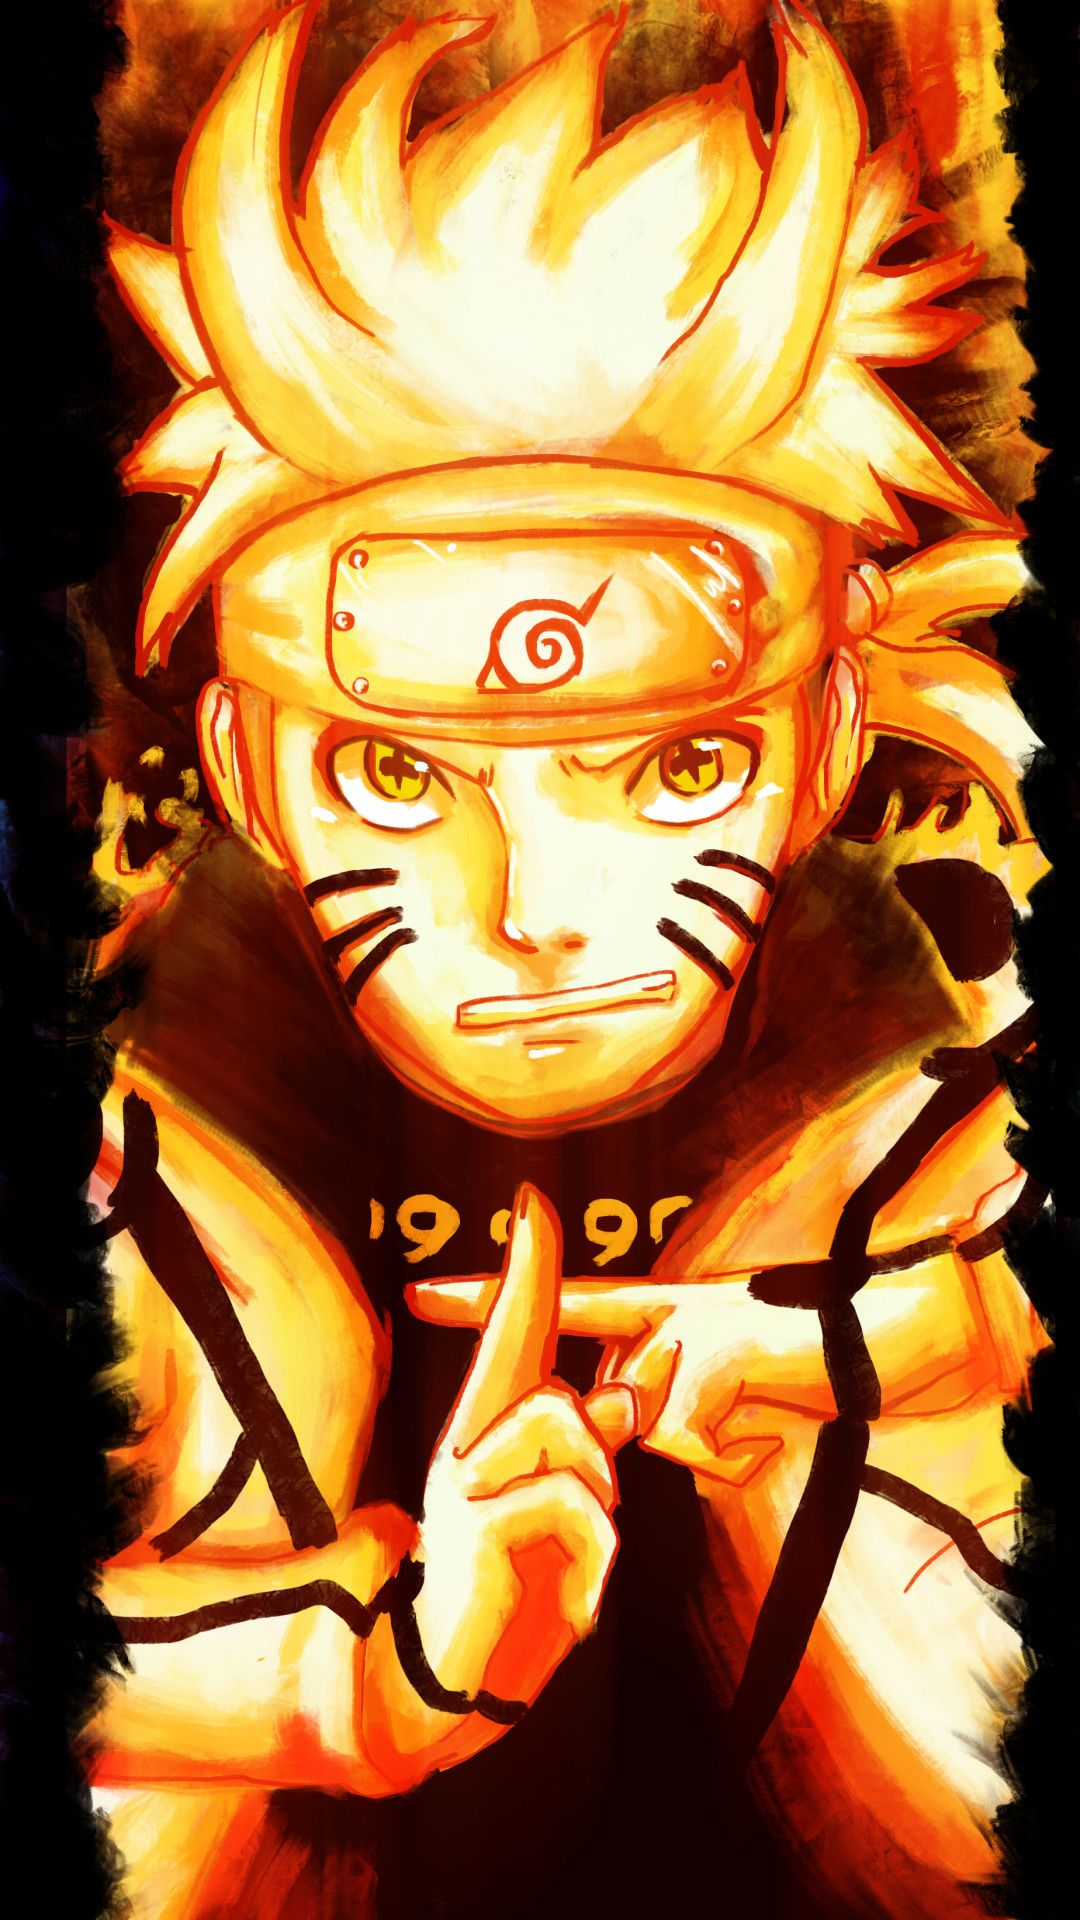 164 1647434 naruto shippuden wallpaper 4k celular anime naruto wallpaper